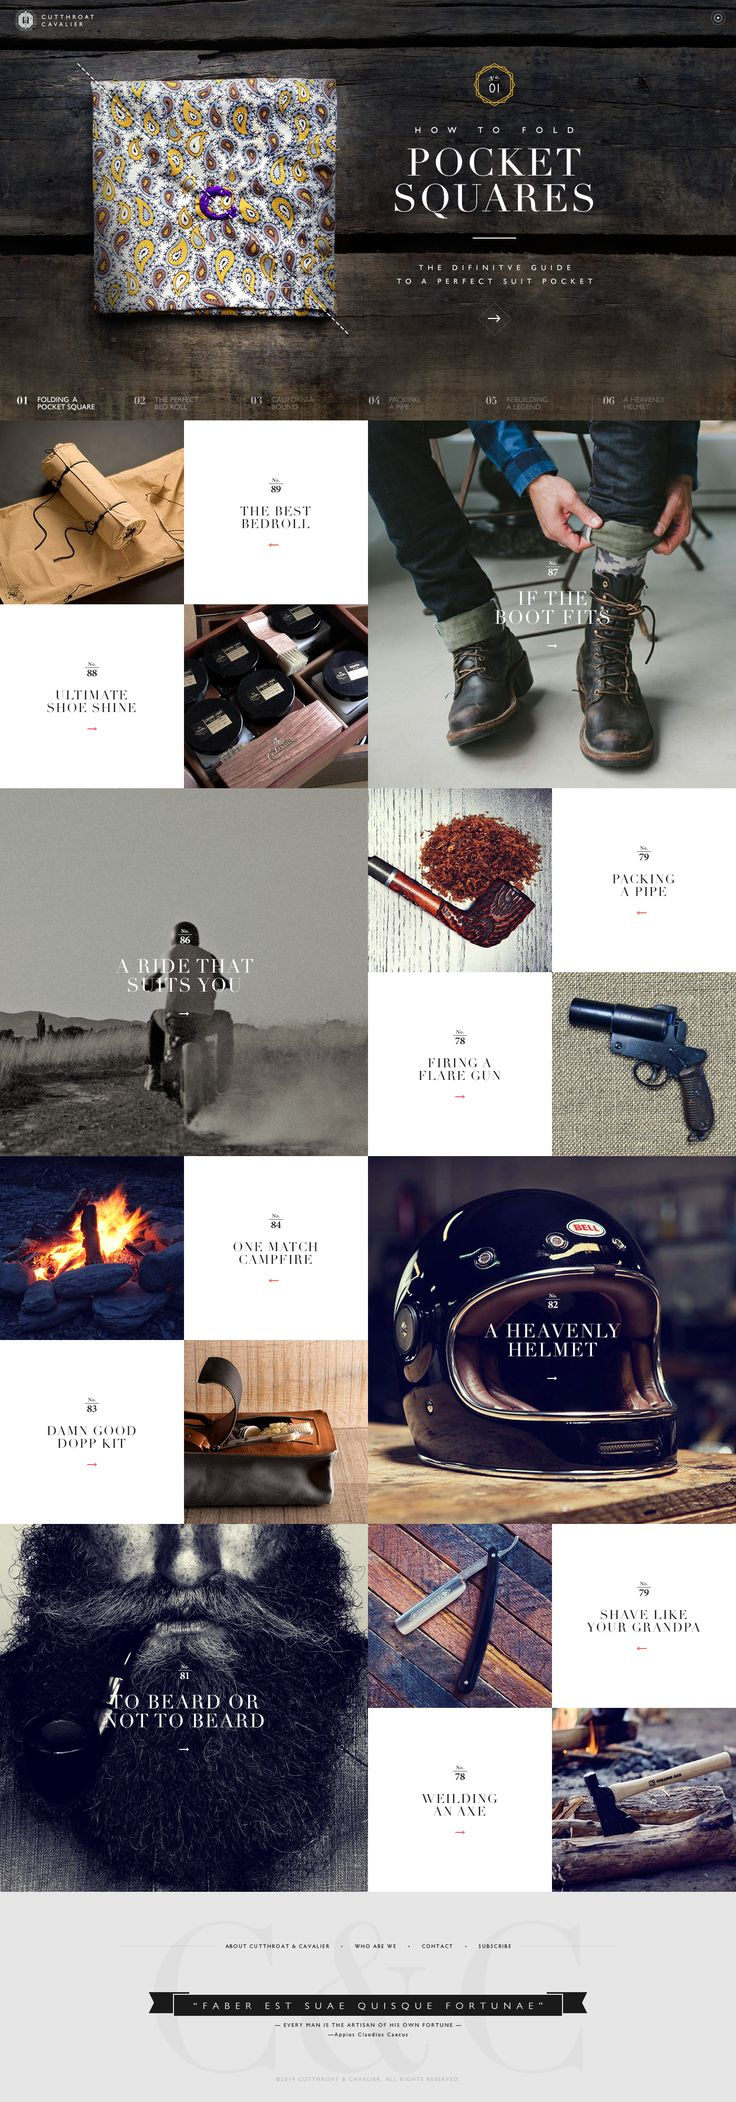 Beautiful flat grid layout with awesome photography!